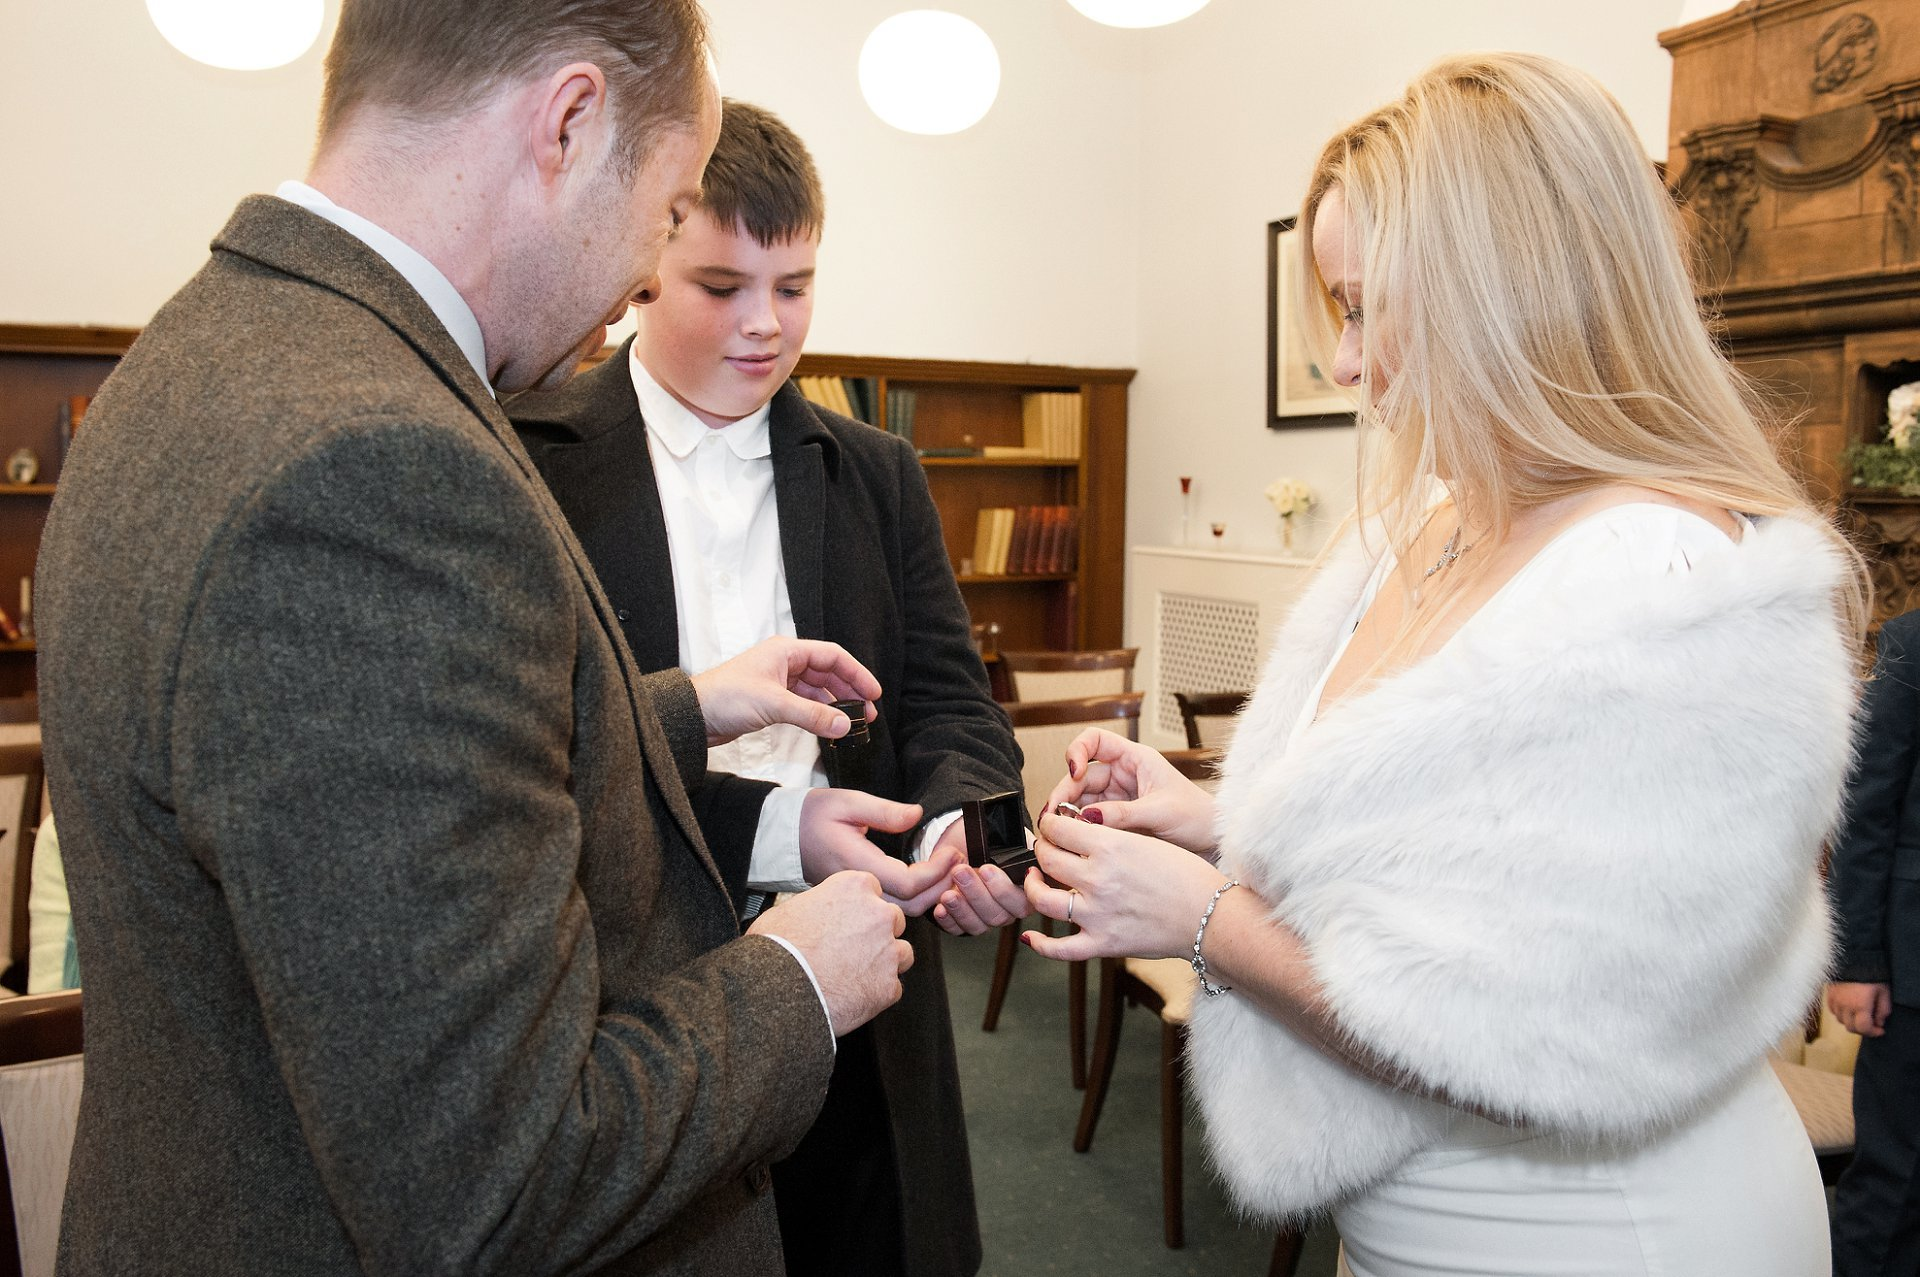 Son brings the rings for his father during a Christmas wedding at Mayfair Library